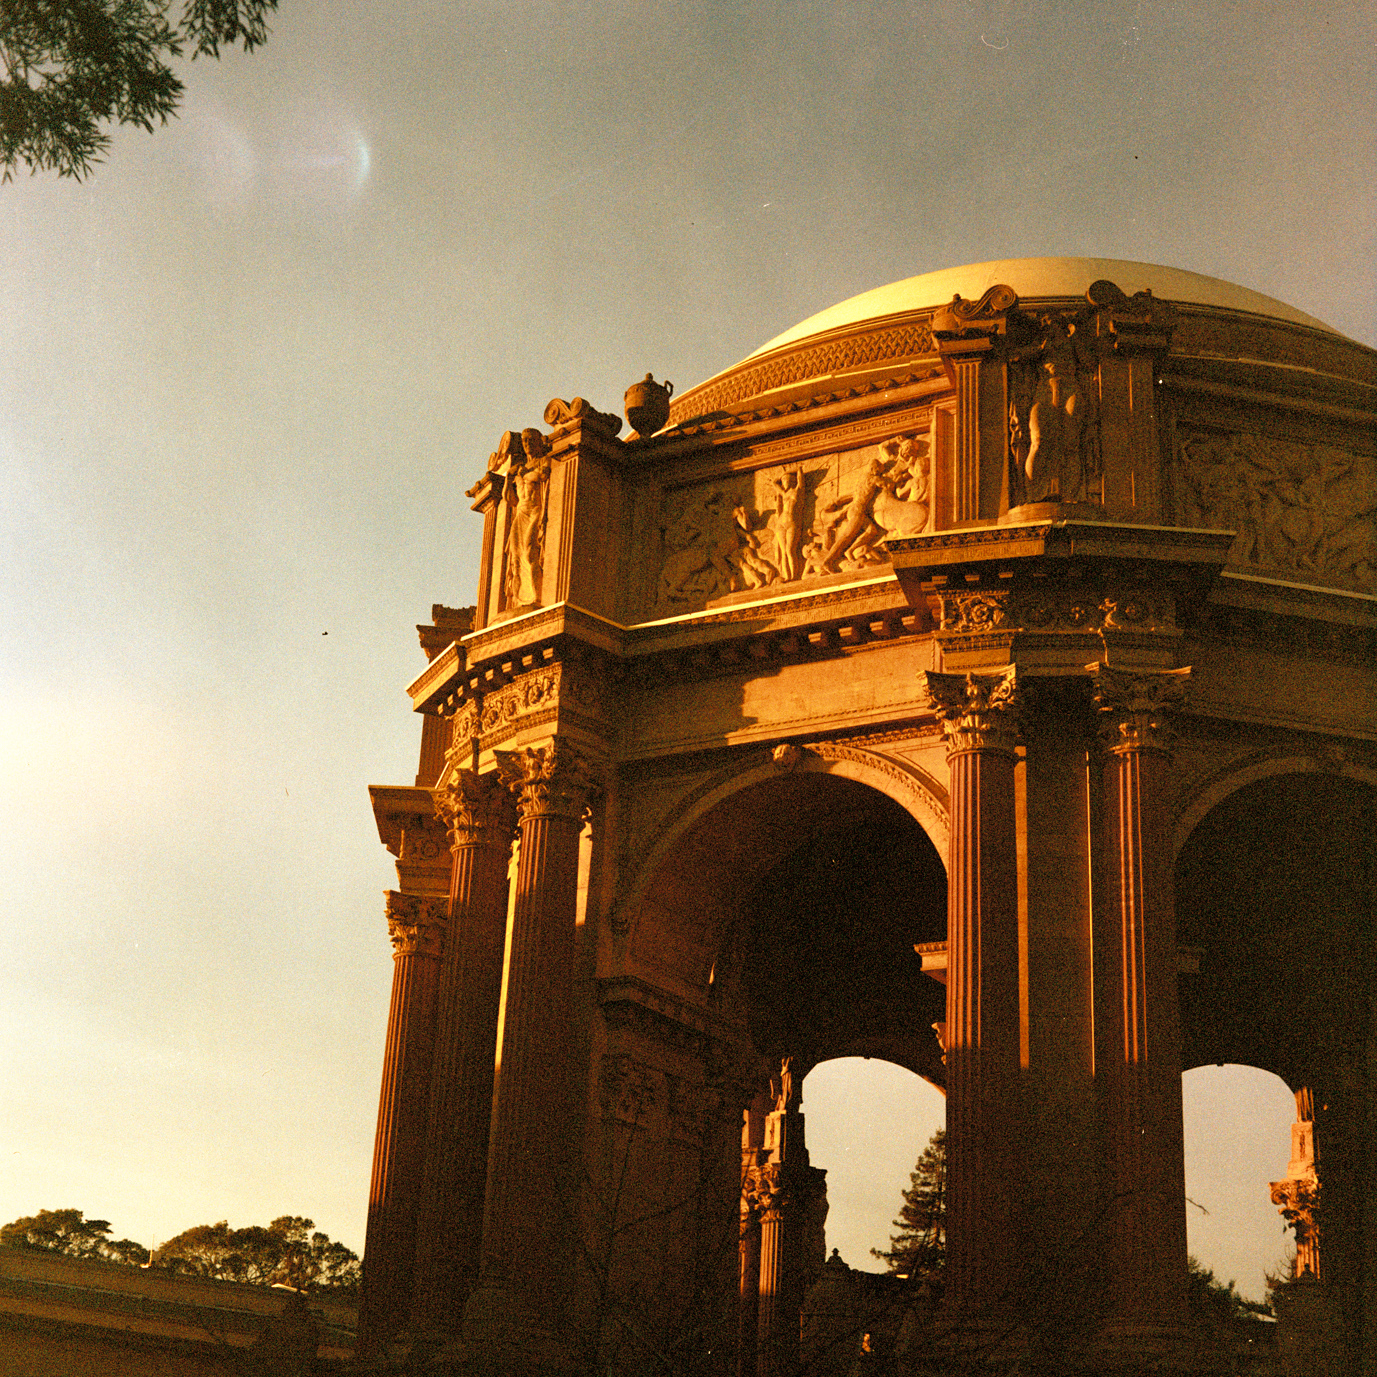 Palace of Fine Arts - Analog Photographer Charlie Sin